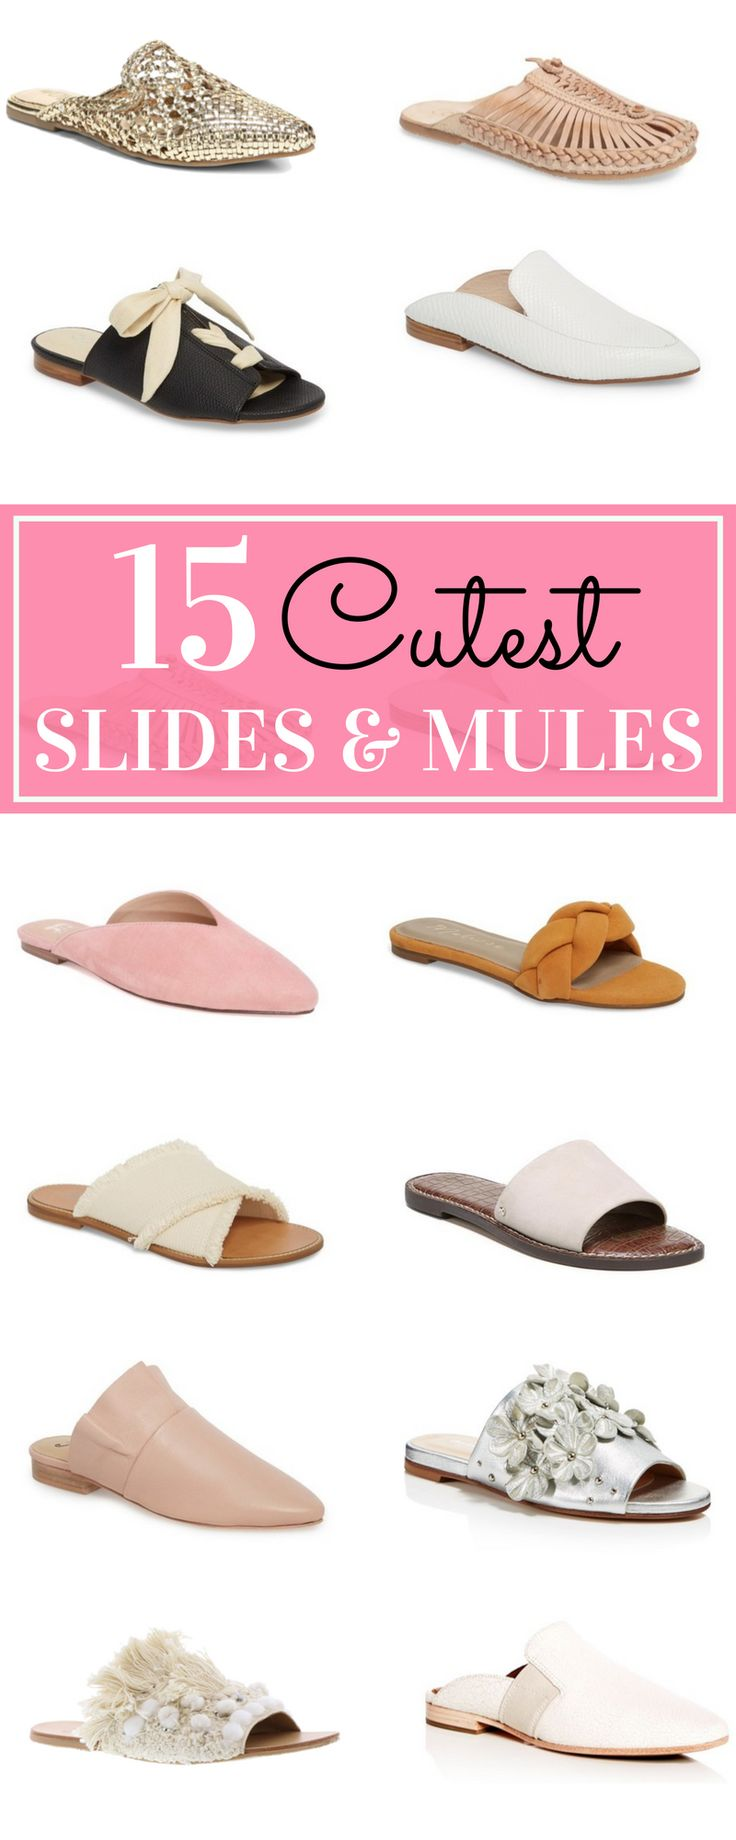 I am having a major love affair with slides. These are the shoes I get the MOST questions about, so I know I'm not the only one digging the comfy trend. Free People Cleo Ruffle Flat. | glitterinc.com | @glitterinc - 15 Slides and Mules That Will Have You Falling in Love With the Trend by popular North Carolina style blogger Glitter, Inc.